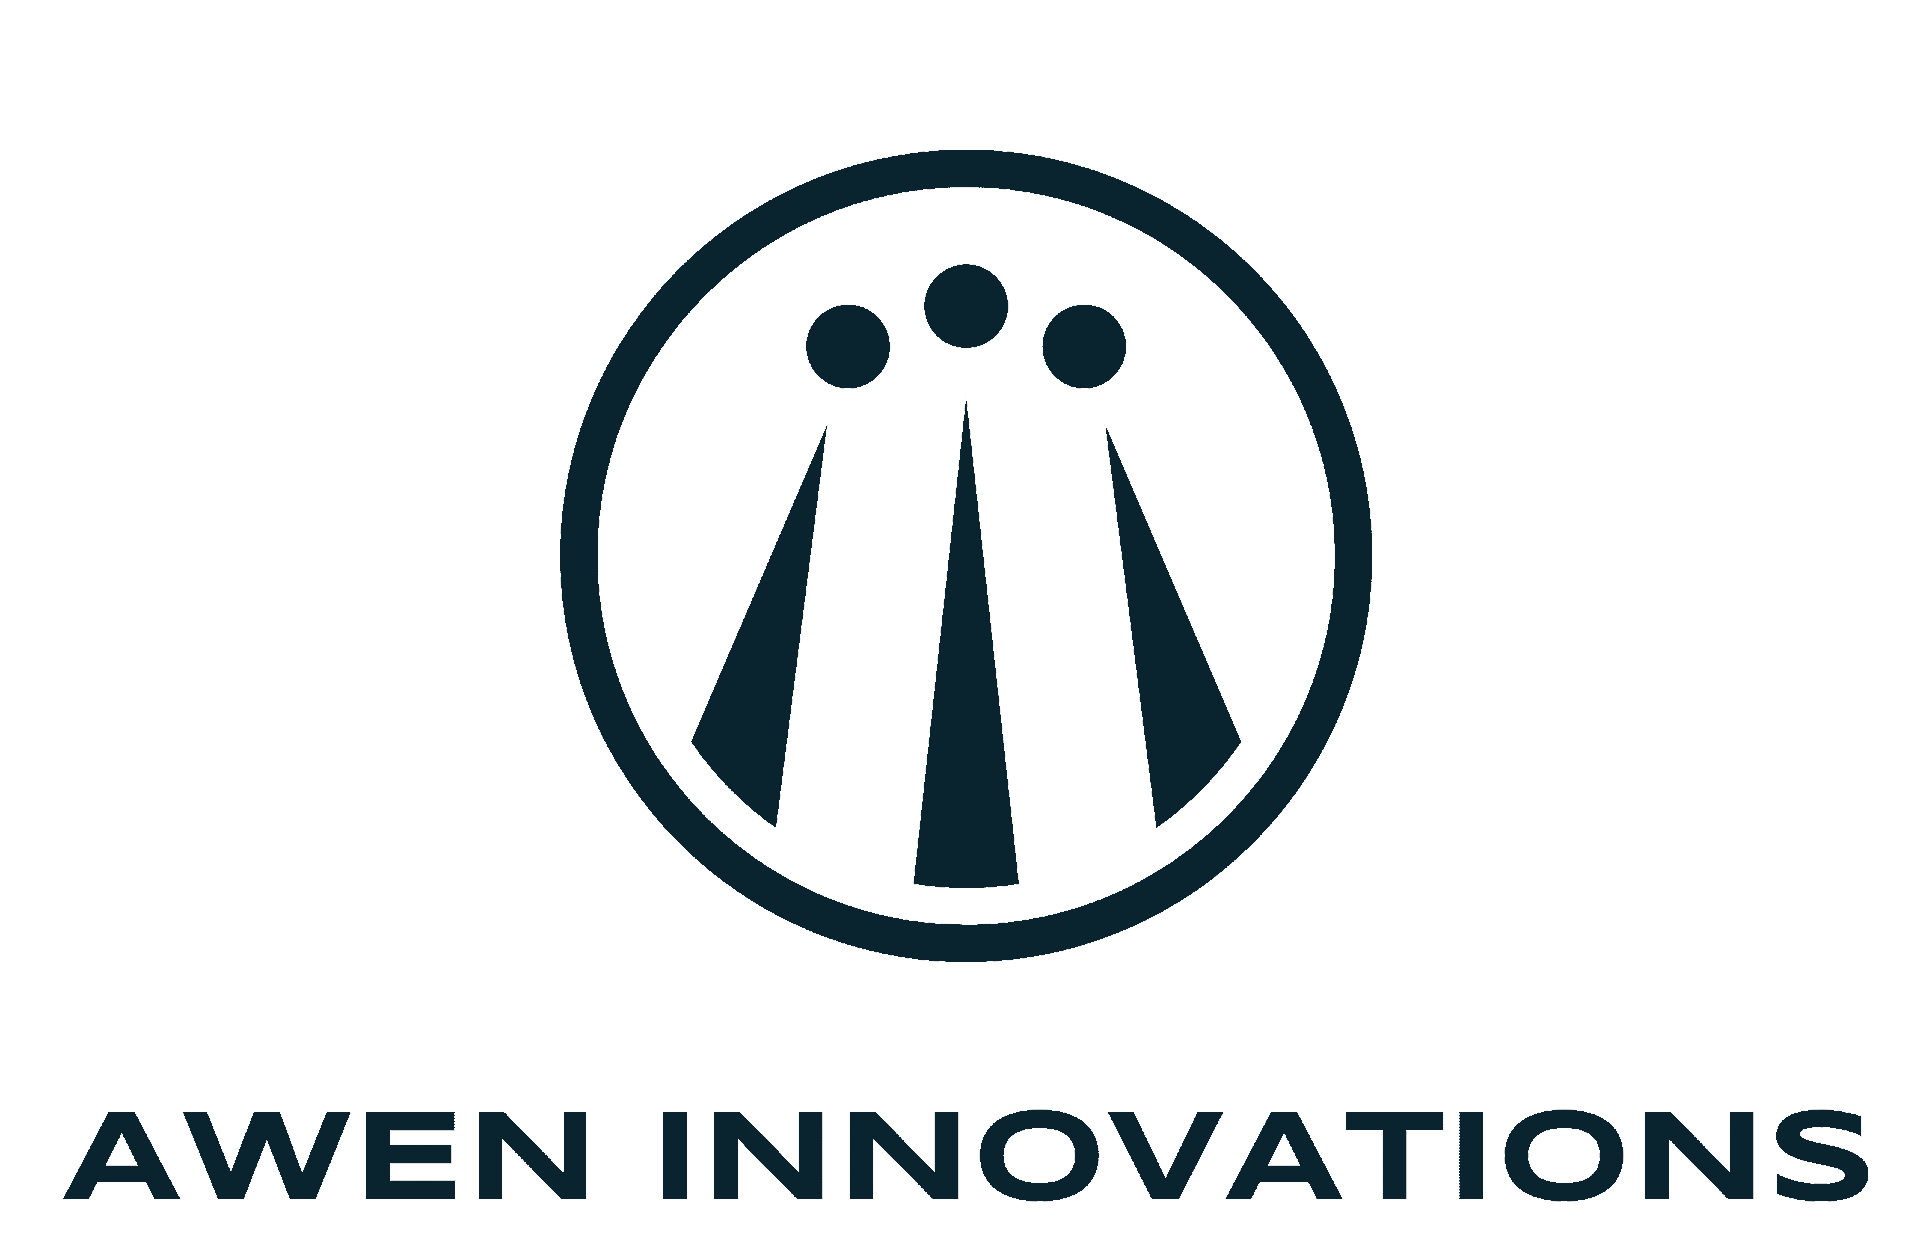 Awen Innovations